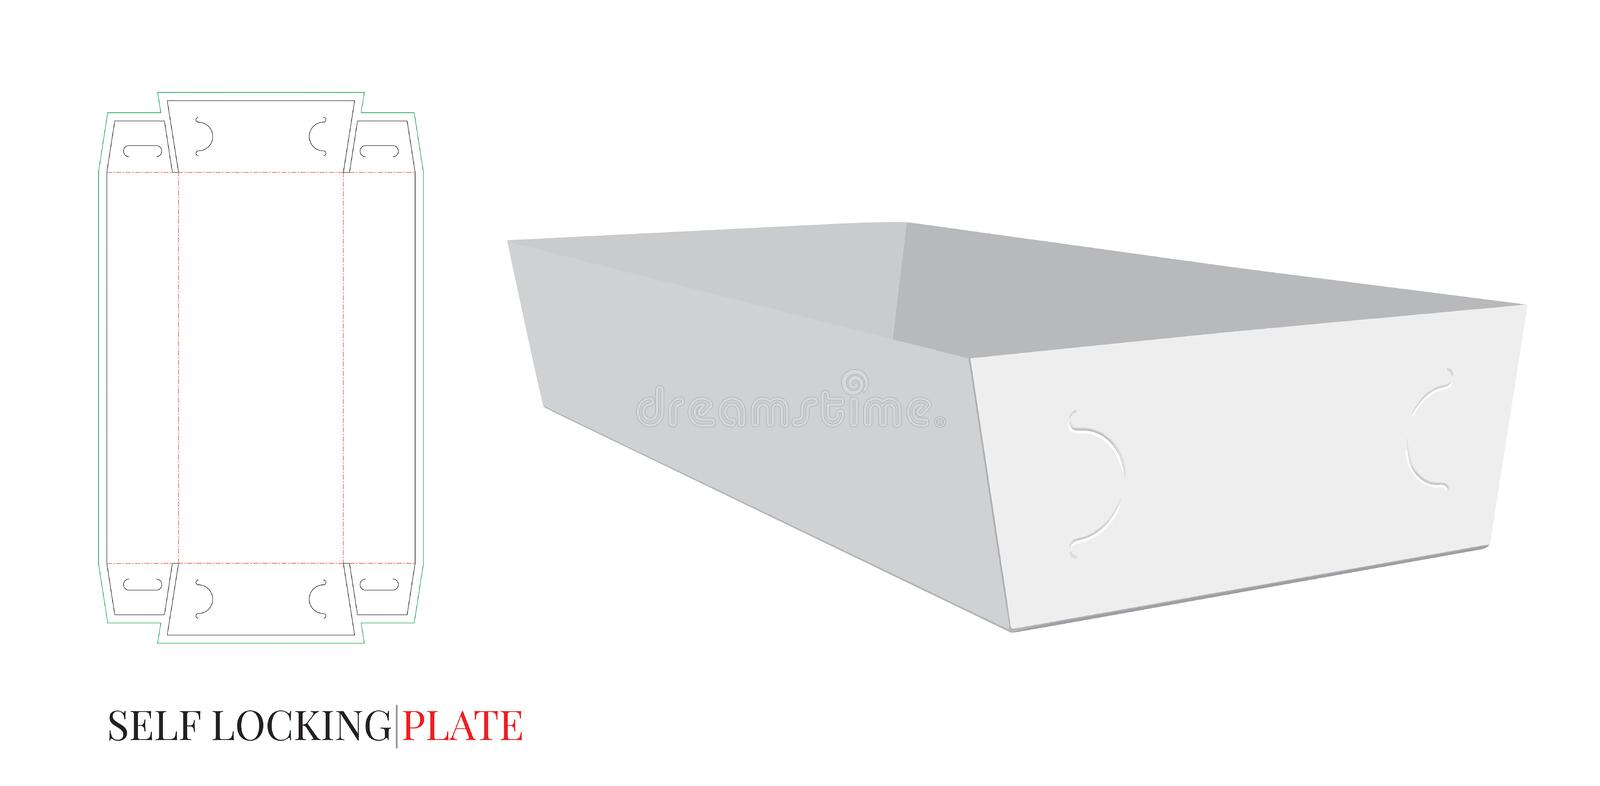 Self Lock Paper Plate Template. Cut and Fold. Vector with die cut / laser cut lines. Package Design. White, clear, blank, isolated stock illustration